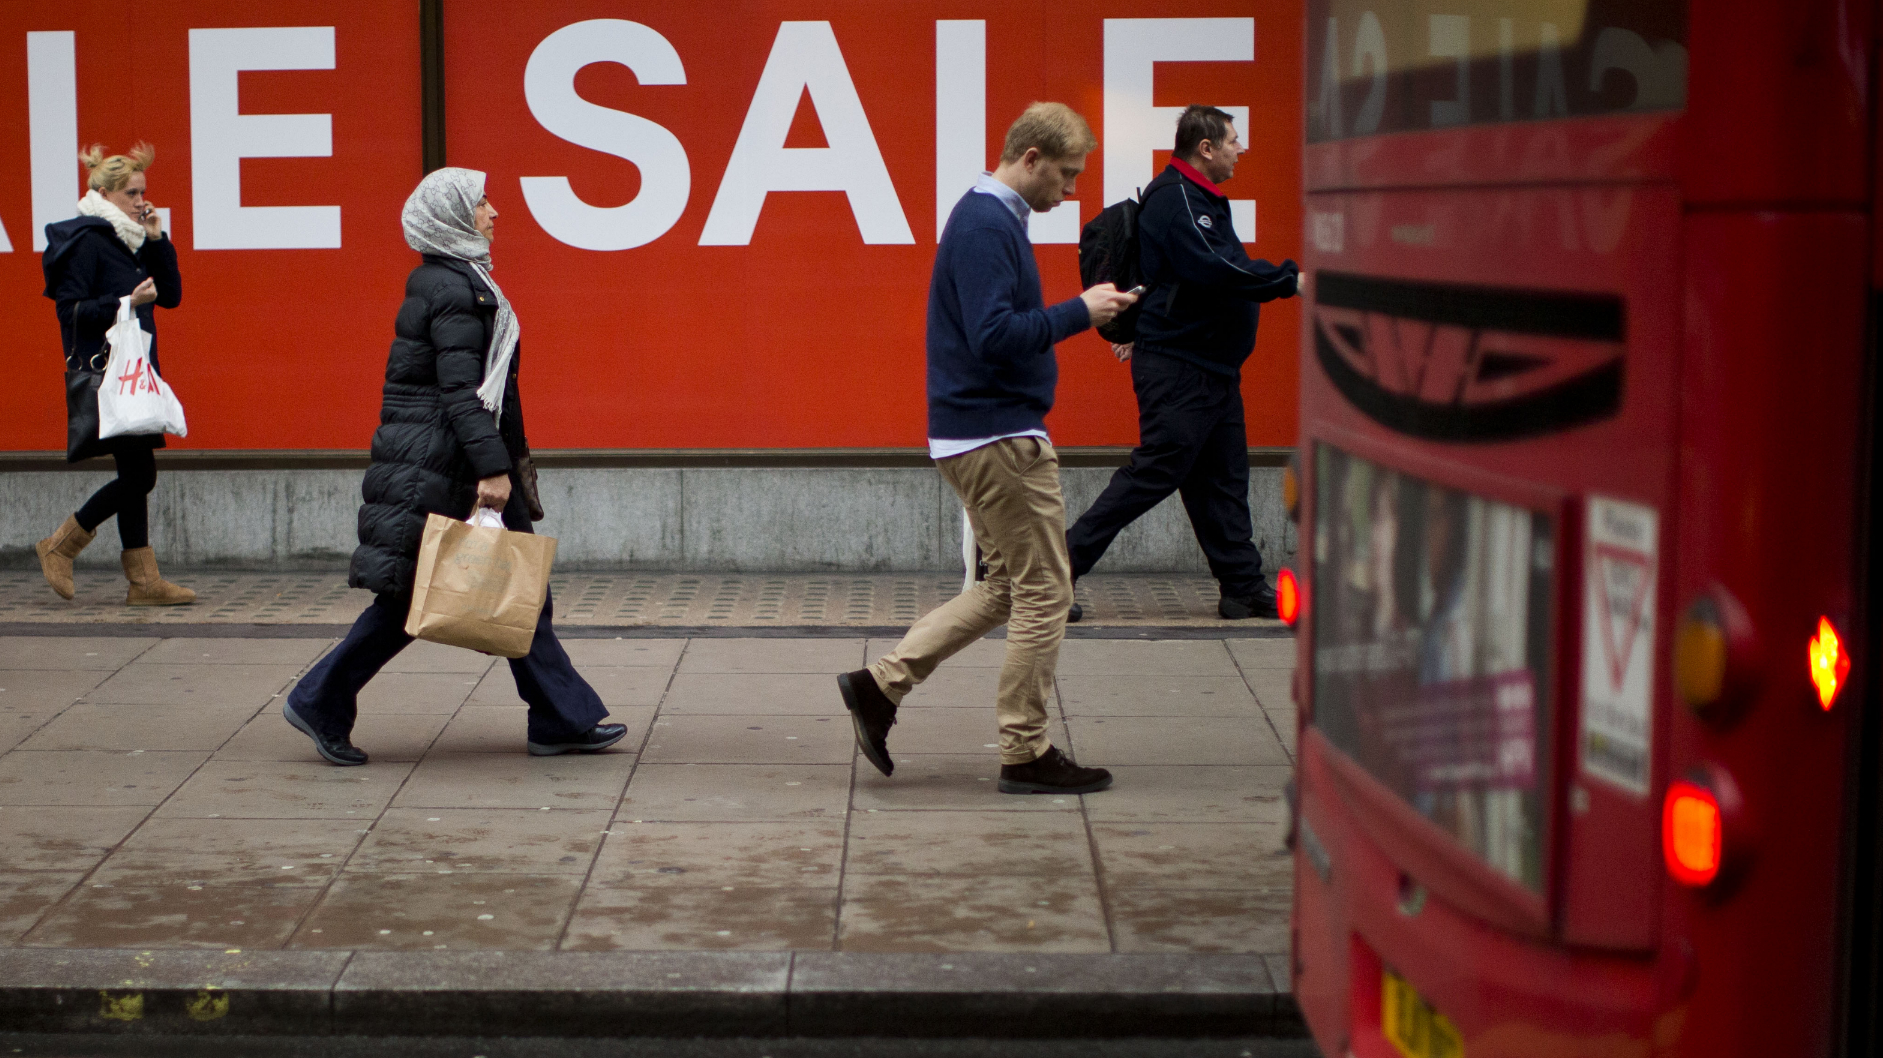 People walk past sale signs on Oxford Street in London, Monday, Dec. 24, 2012. Sales in some UK stores began on Christmas Eve.